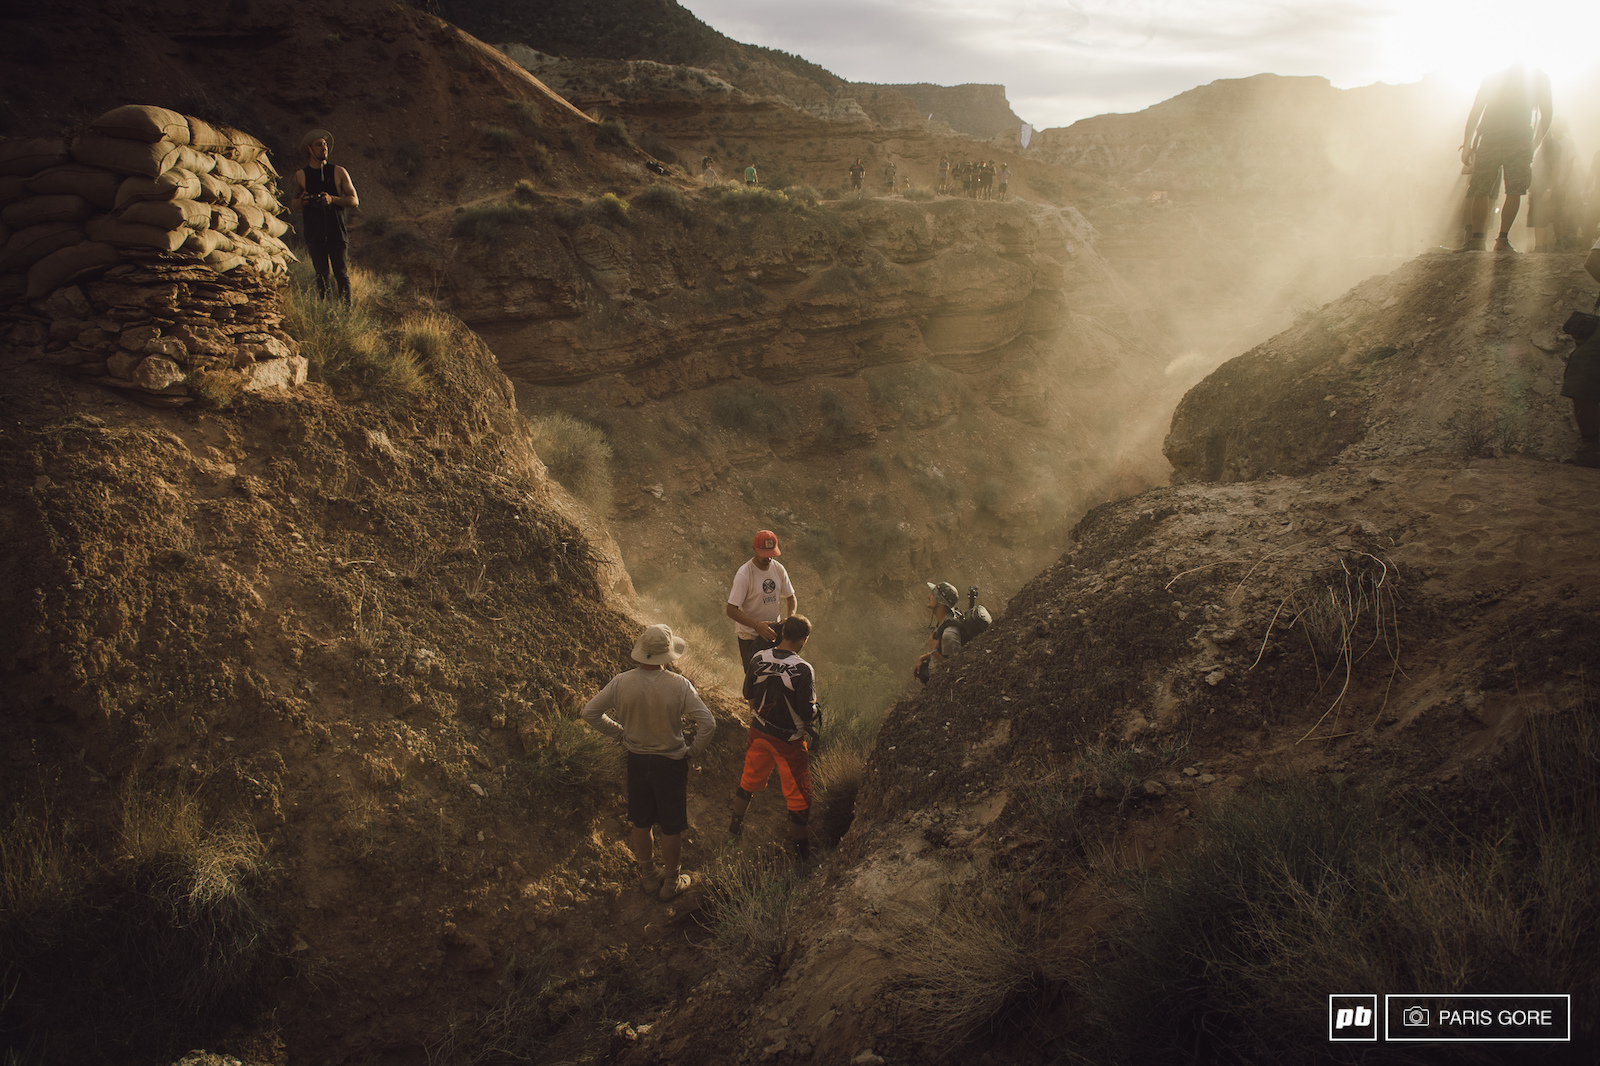 Cam Zink went into the canyon hard. He had been pedalling into the drop to test speed in a high gear hiked way up to roll into the canyon gap only to slip a pedal off the lip while cranking into it.